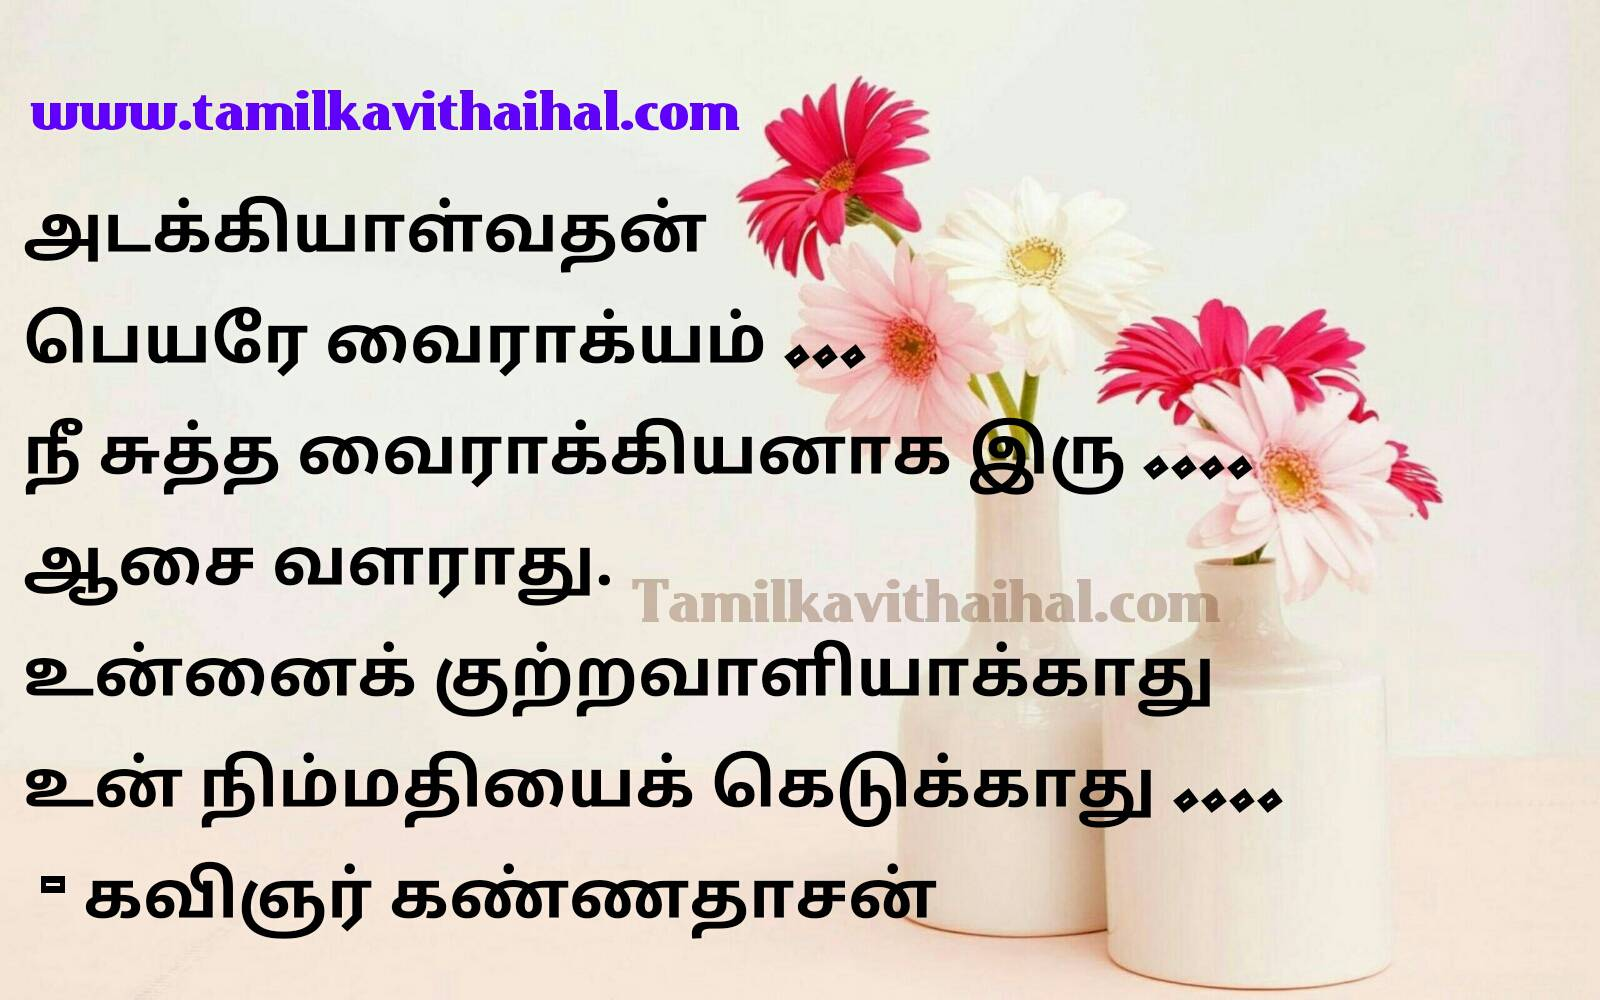 Beautiful Quotes For Kannadasan Valkkai Thathuvam Quotes For